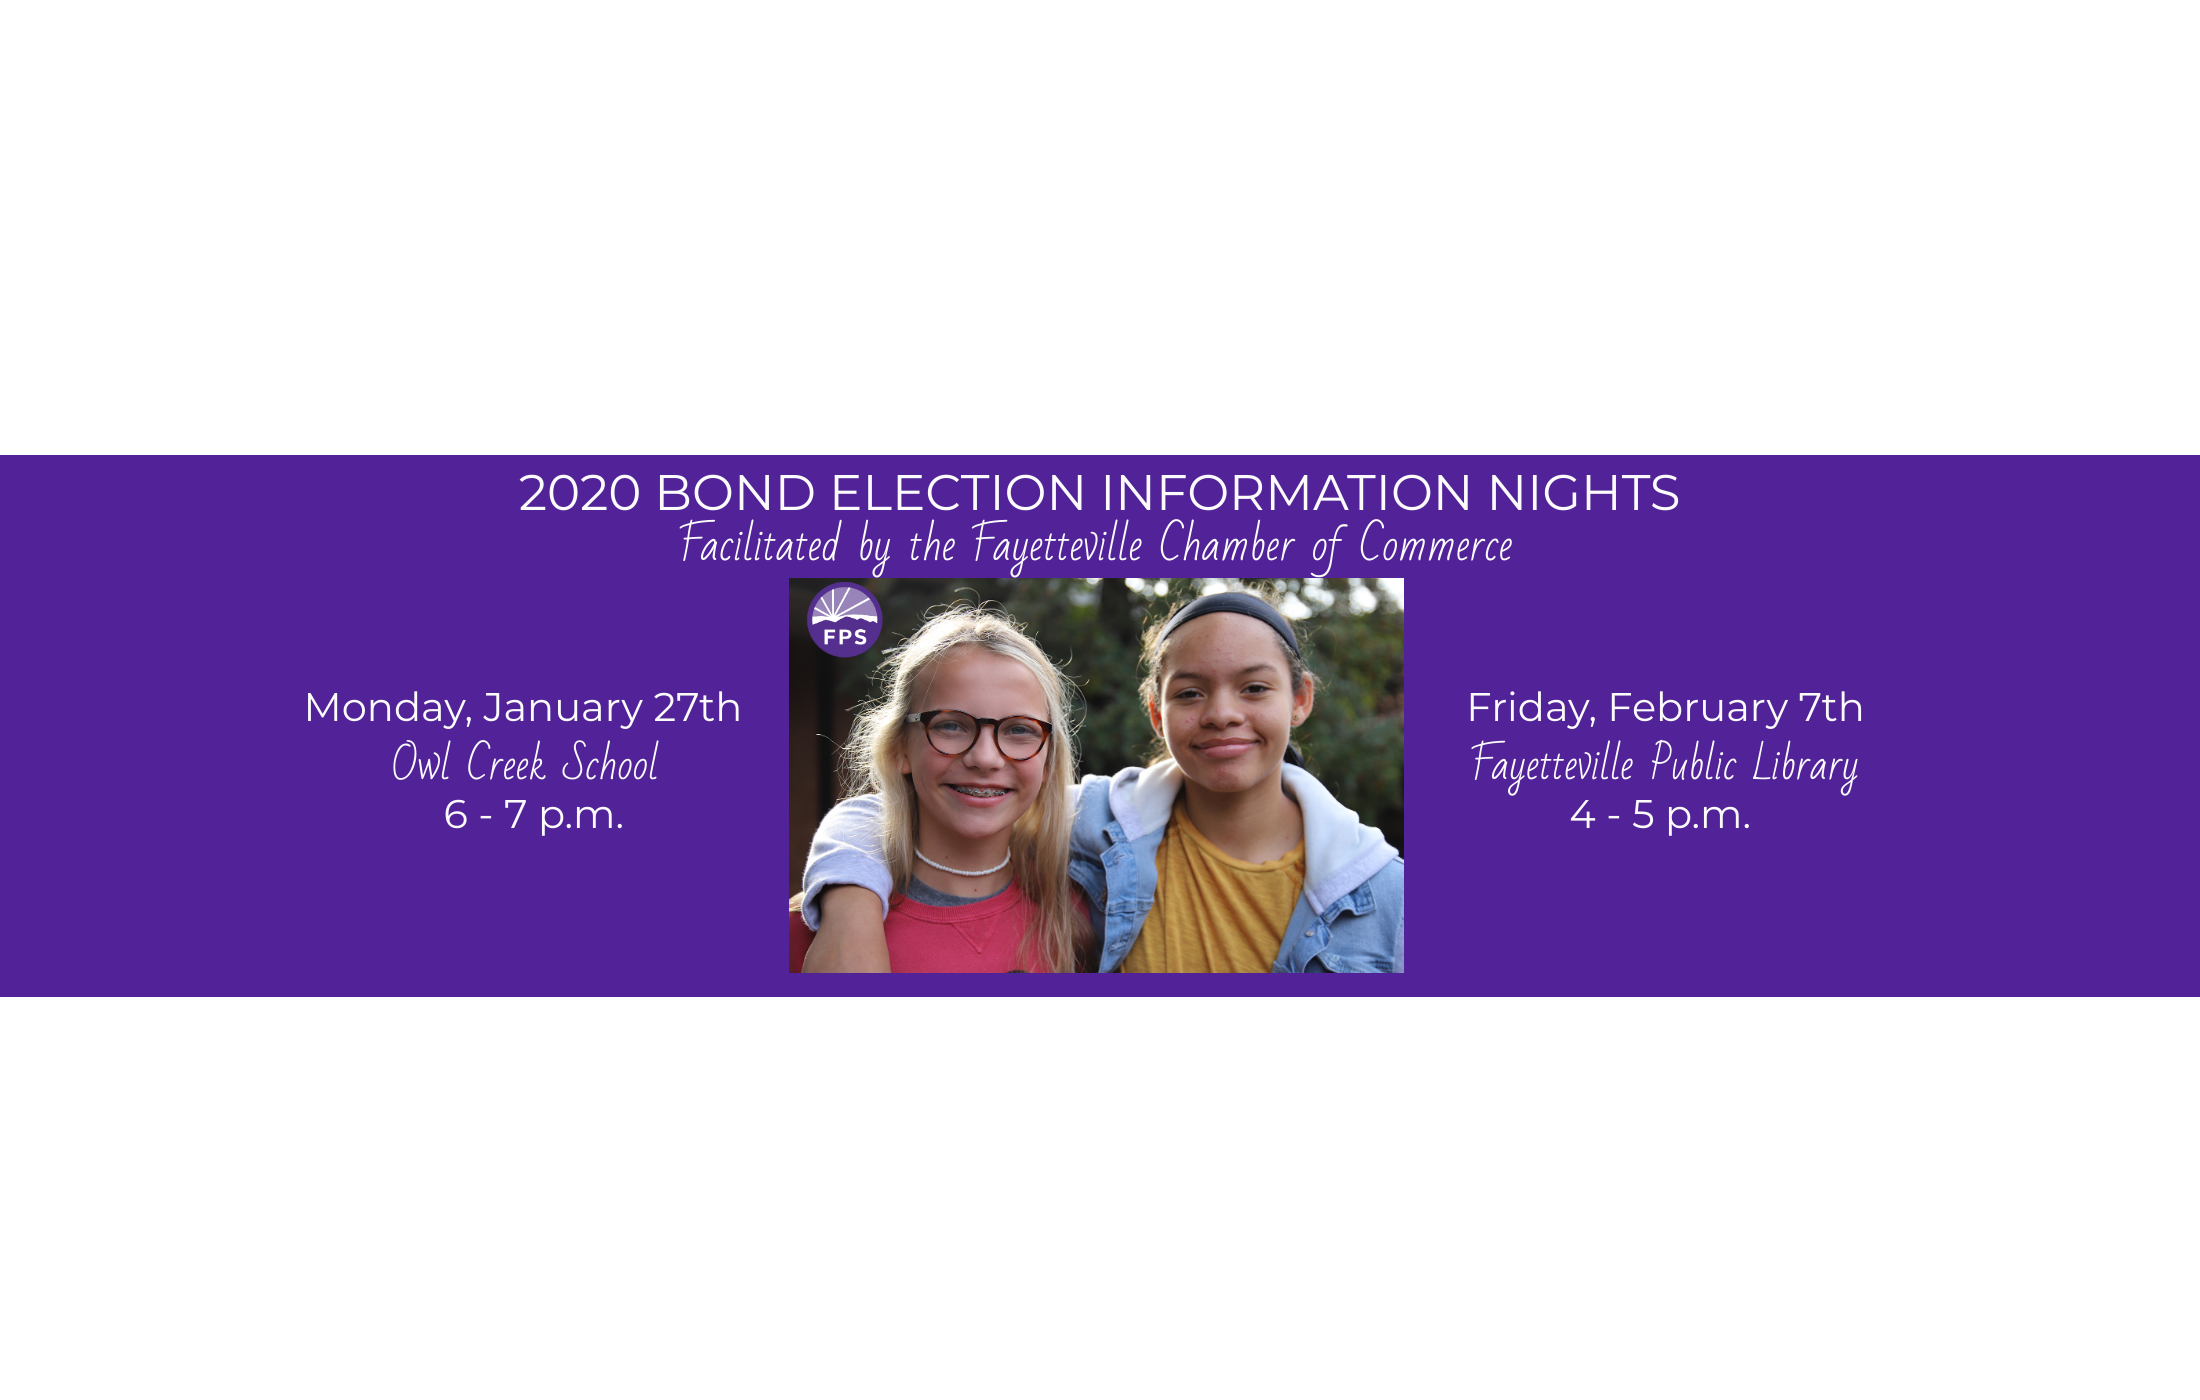 2020 Bond Election Information Nights Facilitated by the Fayetteville Chamber of Commerce  Monday, January 27 Owl Creek School 6 - 7 p.m.  Friday, February 7 Fayetteville Public Library 4 - 5 p.m.  For more information on the February 11 bond election, go to https://sites.google.com/g.fayar.…/focusonthefuture2020/home